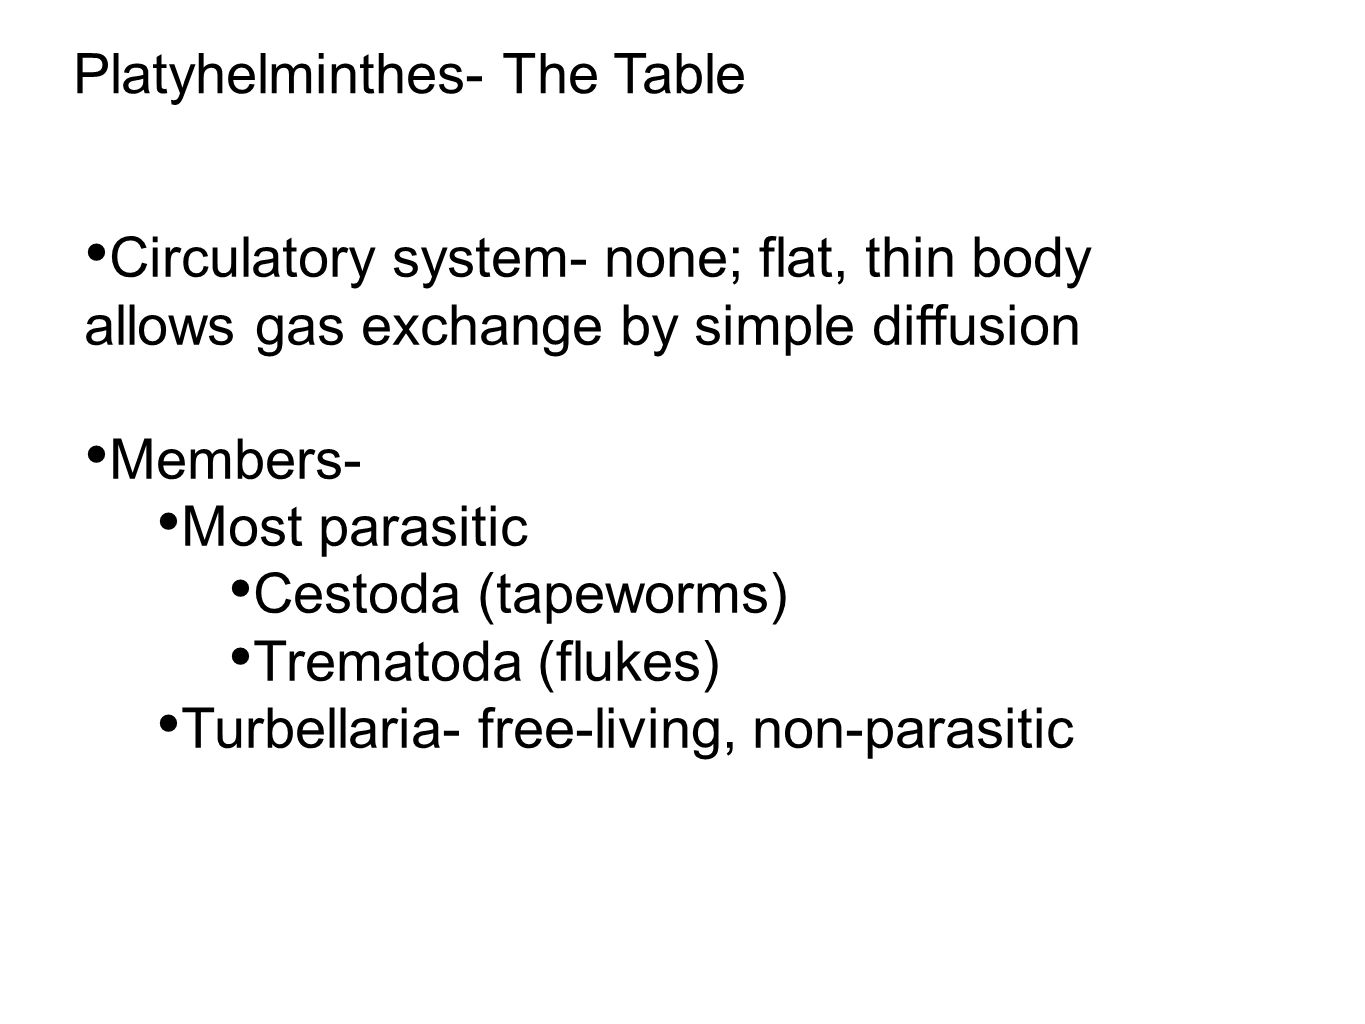 Circulatory system- none; flat, thin body allows gas exchange by simple diffusion Members- Most parasitic Cestoda (tapeworms) Trematoda (flukes) Turbellaria- free-living, non-parasitic Platyhelminthes- The Table